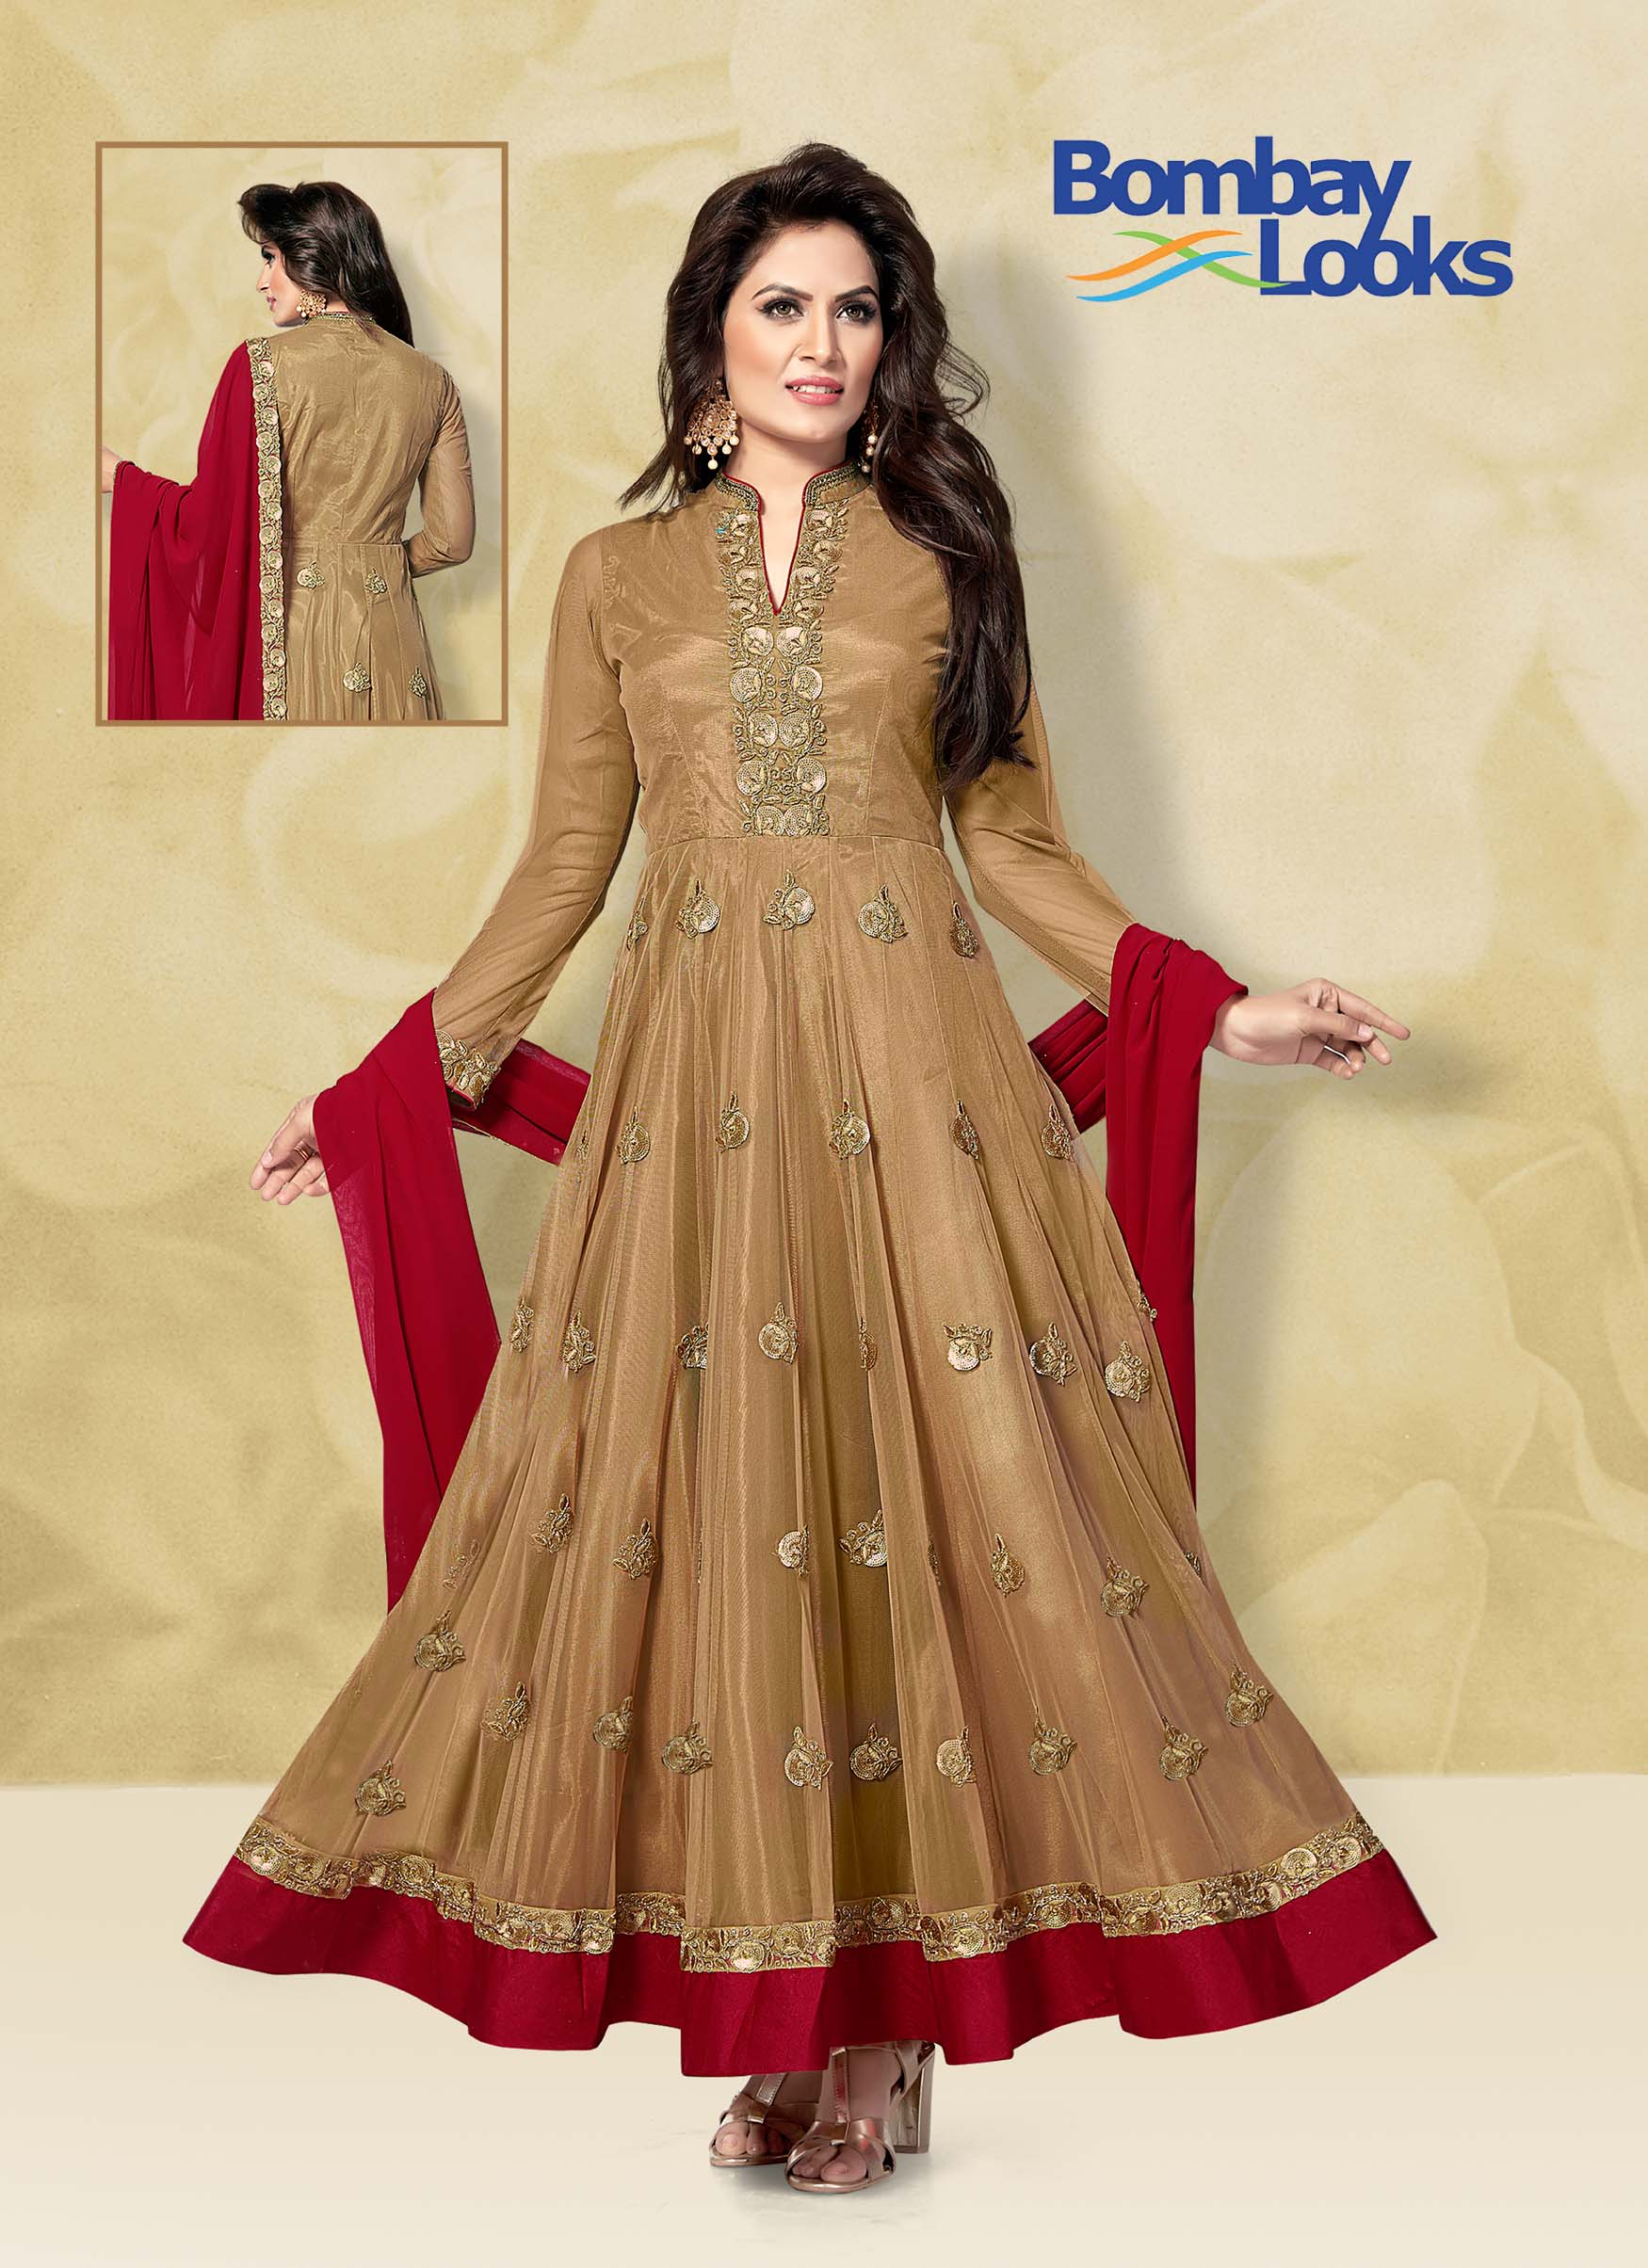 Soft net suit in light gold and contrast red dupatta